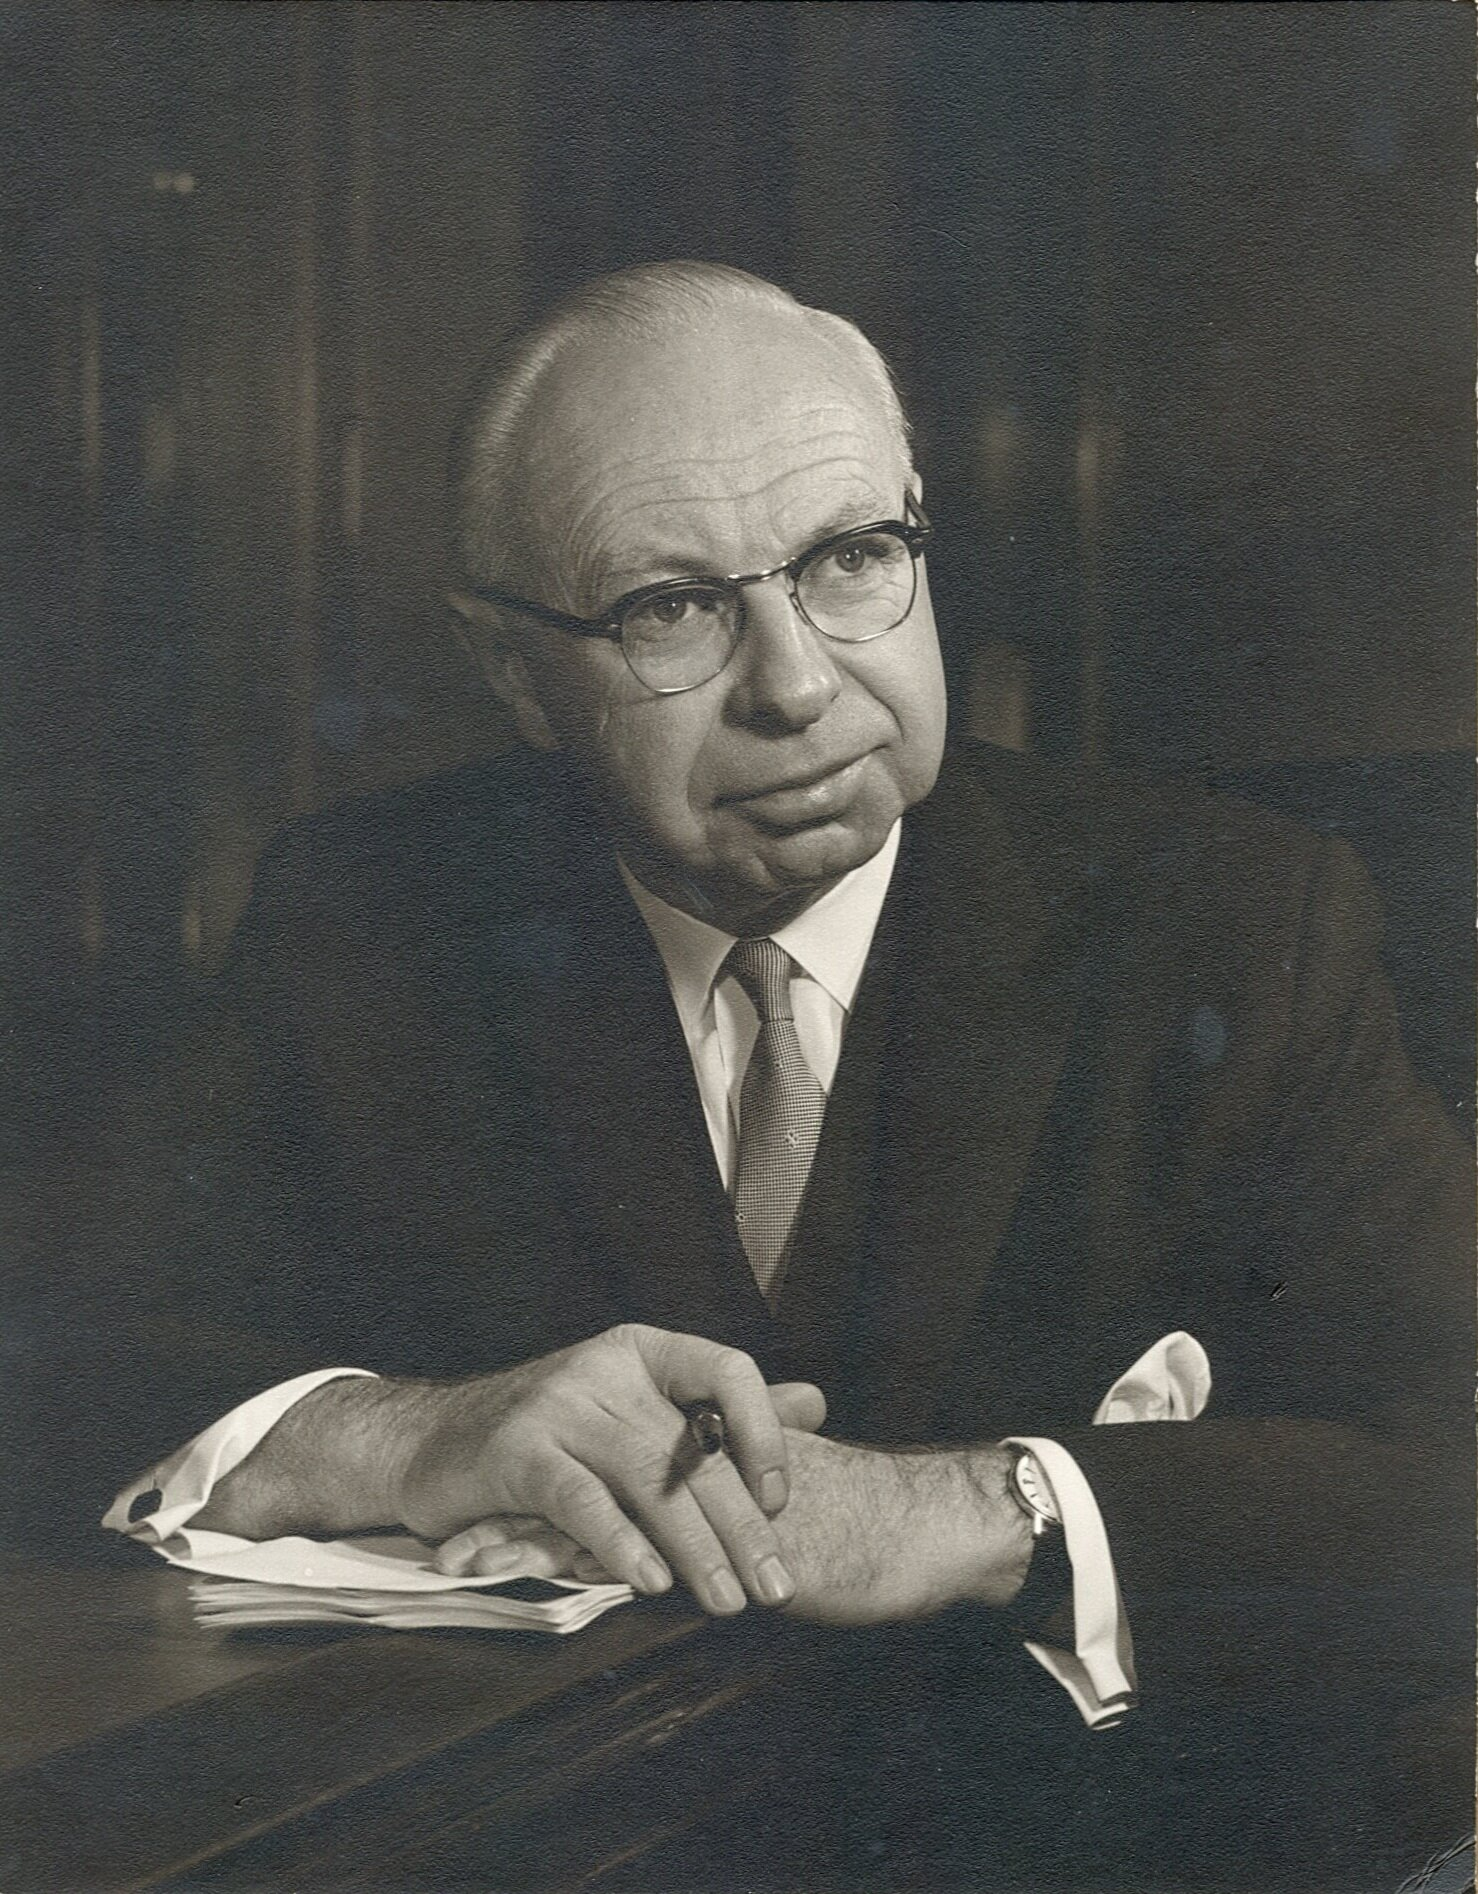 """J. Allyn Taylor was a former President of Canada Trust and an extraordinary community leader.  Affectionately dubbed """"Mr. London,"""" he was instrumental in revitalizing London Community Foundation in 1979 and continued to serve the community as Honorary Chair of the Foundation's Board until his death in 2006."""